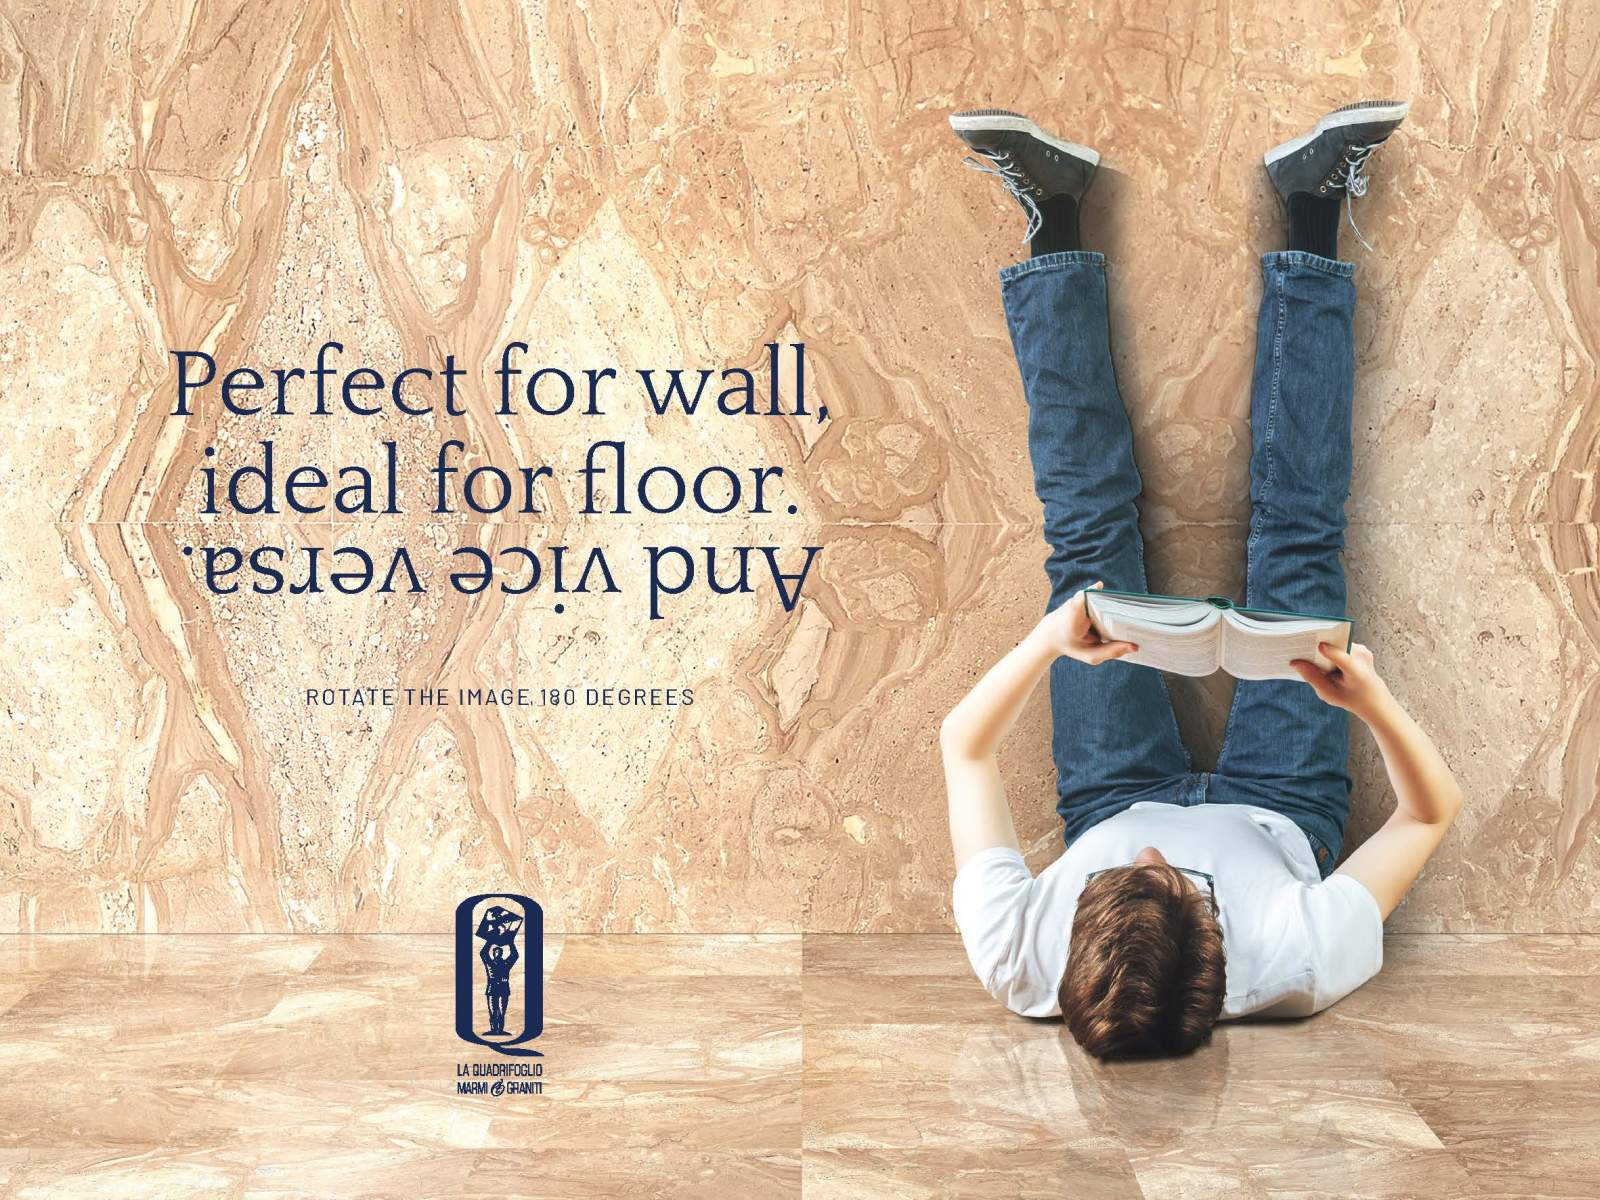 Perfect for wall, ideal for floor.<br> And vice versa.